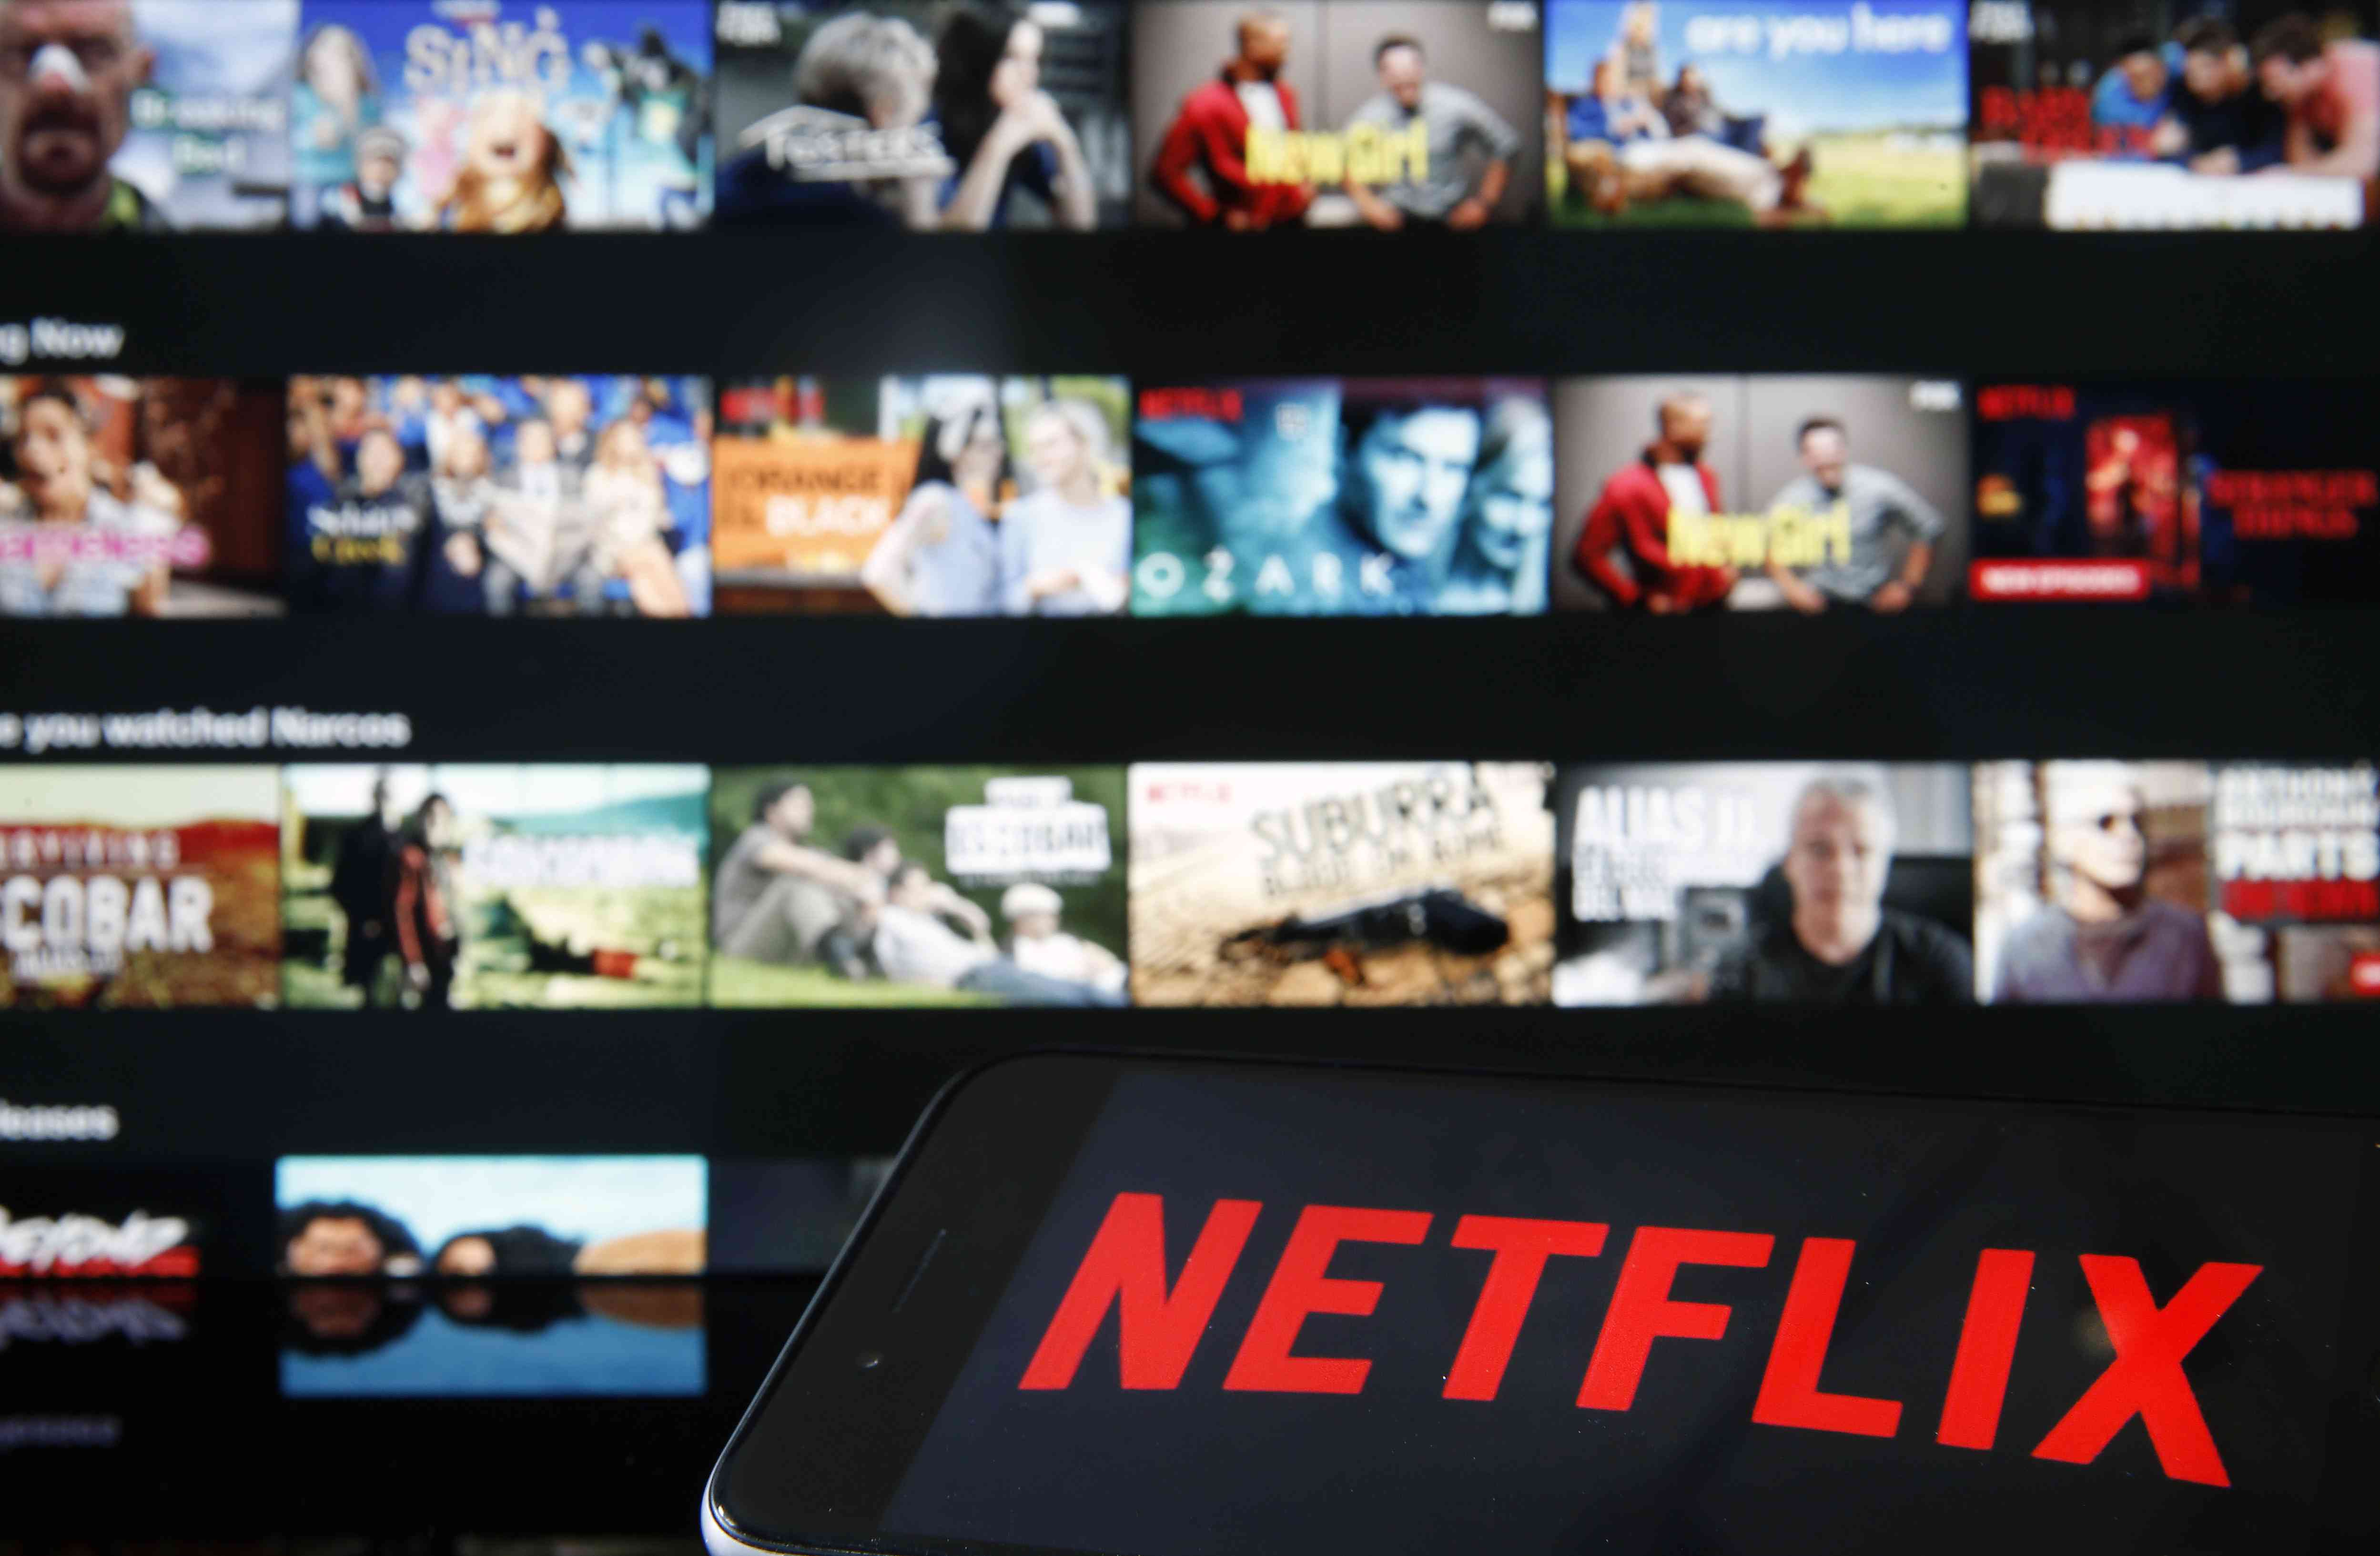 Netflix logo displayed on an iPhone in front of a television showing Netflix